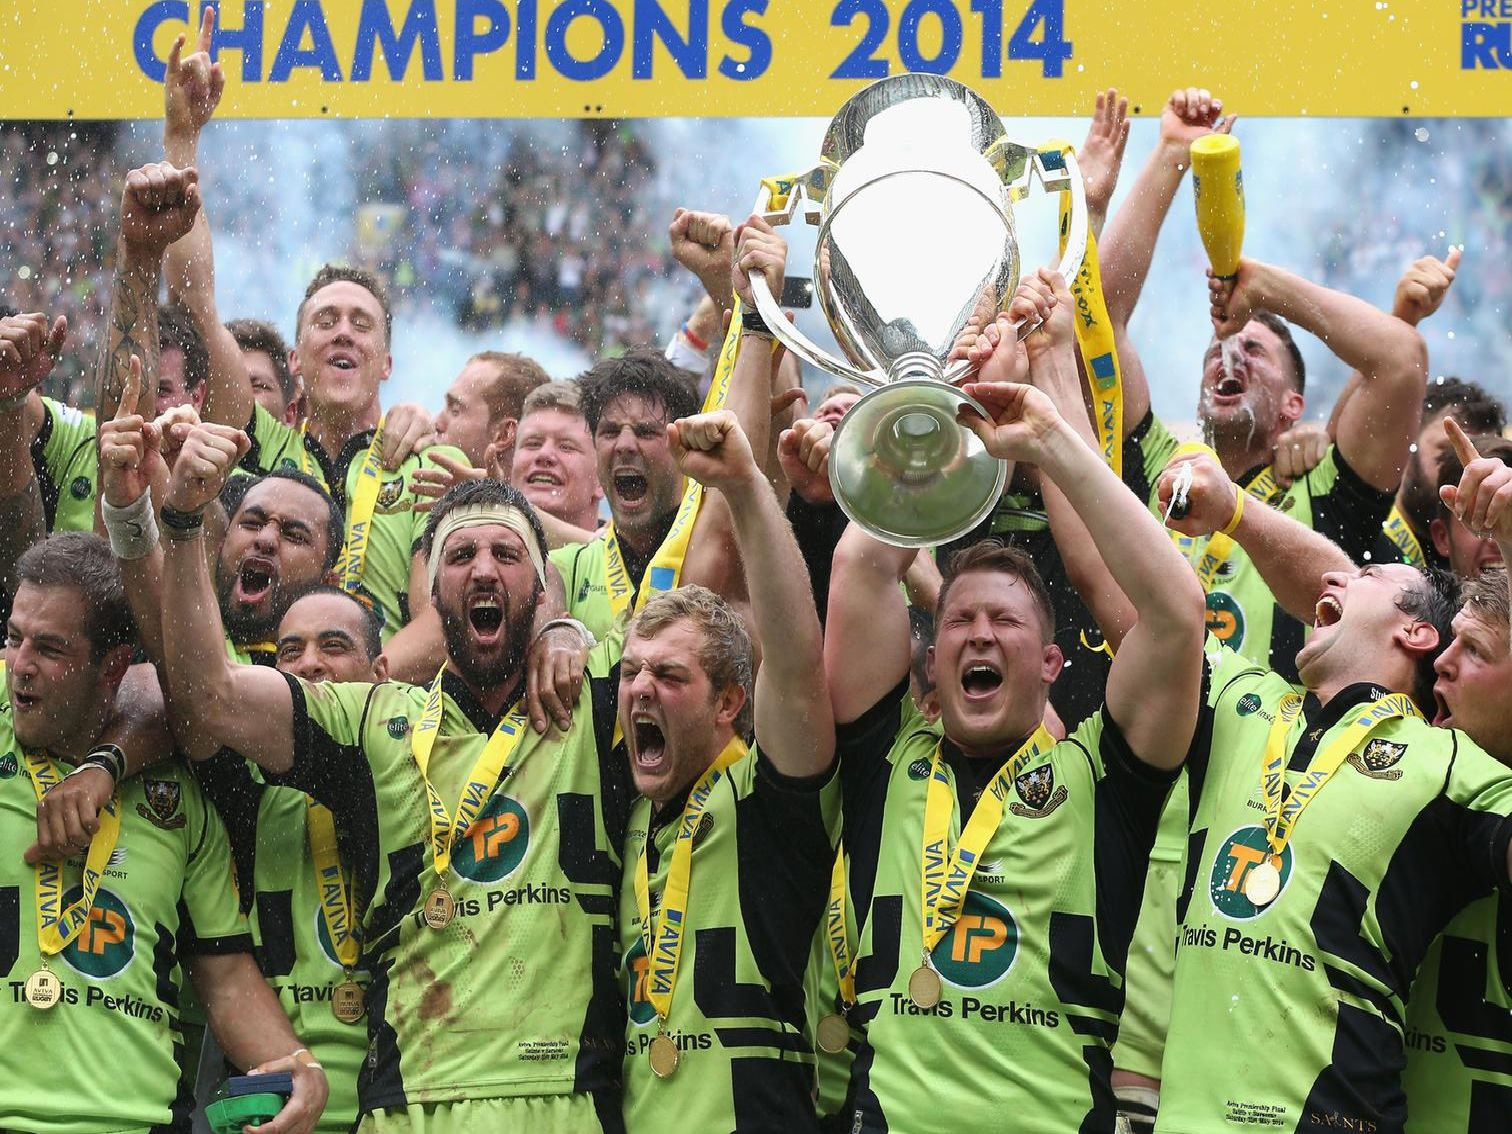 Saints won the Premiership title on May 31, 2014